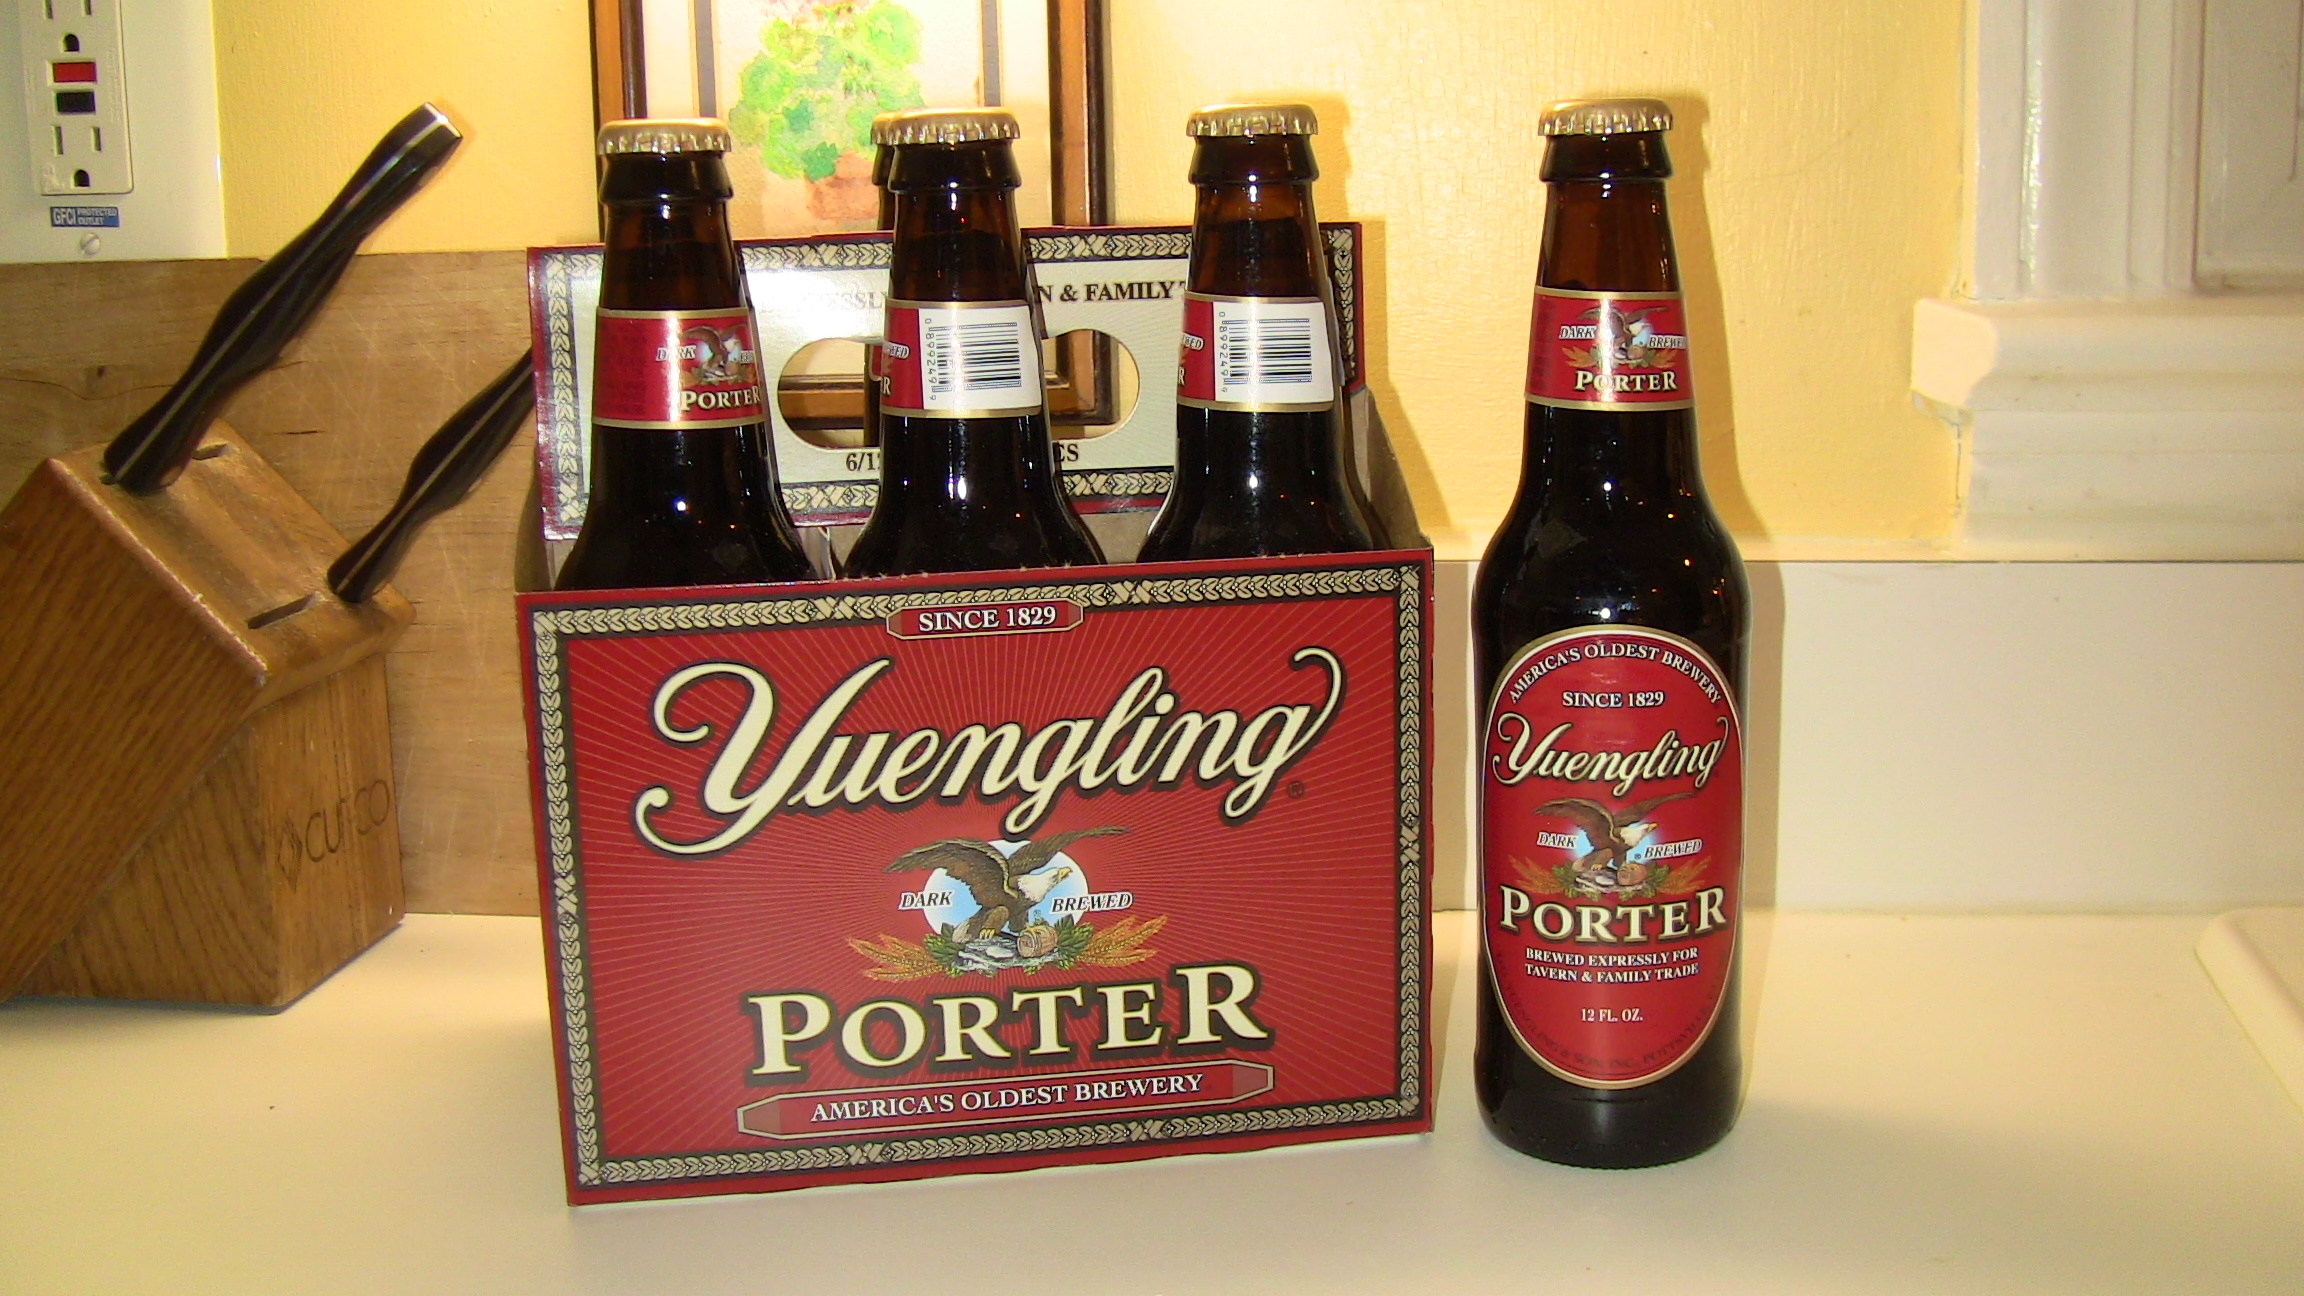 6 pack of Yuengling Porter